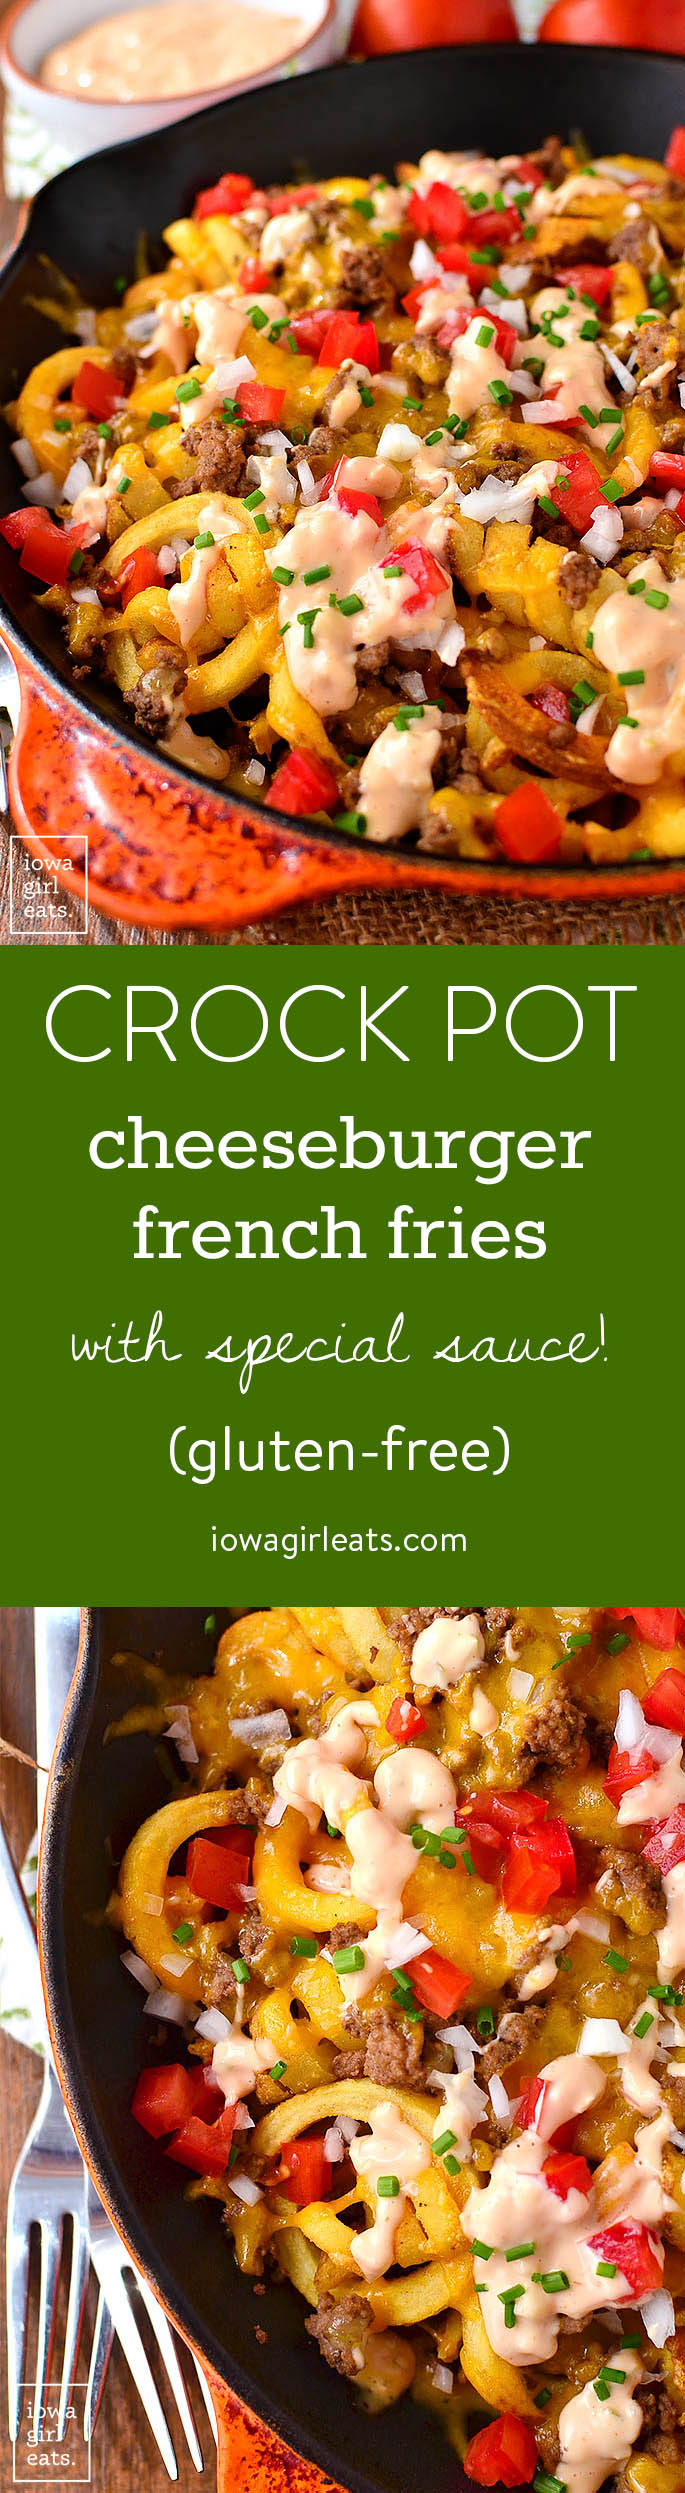 Give your burger and fries a makeover with Crock Pot Cheeseburger French Fries with Special Sauce! Your family will devour this simple, gluten-free dinner recipe and you can use the leftover meat in a variety of ways. | iowagirleats.com